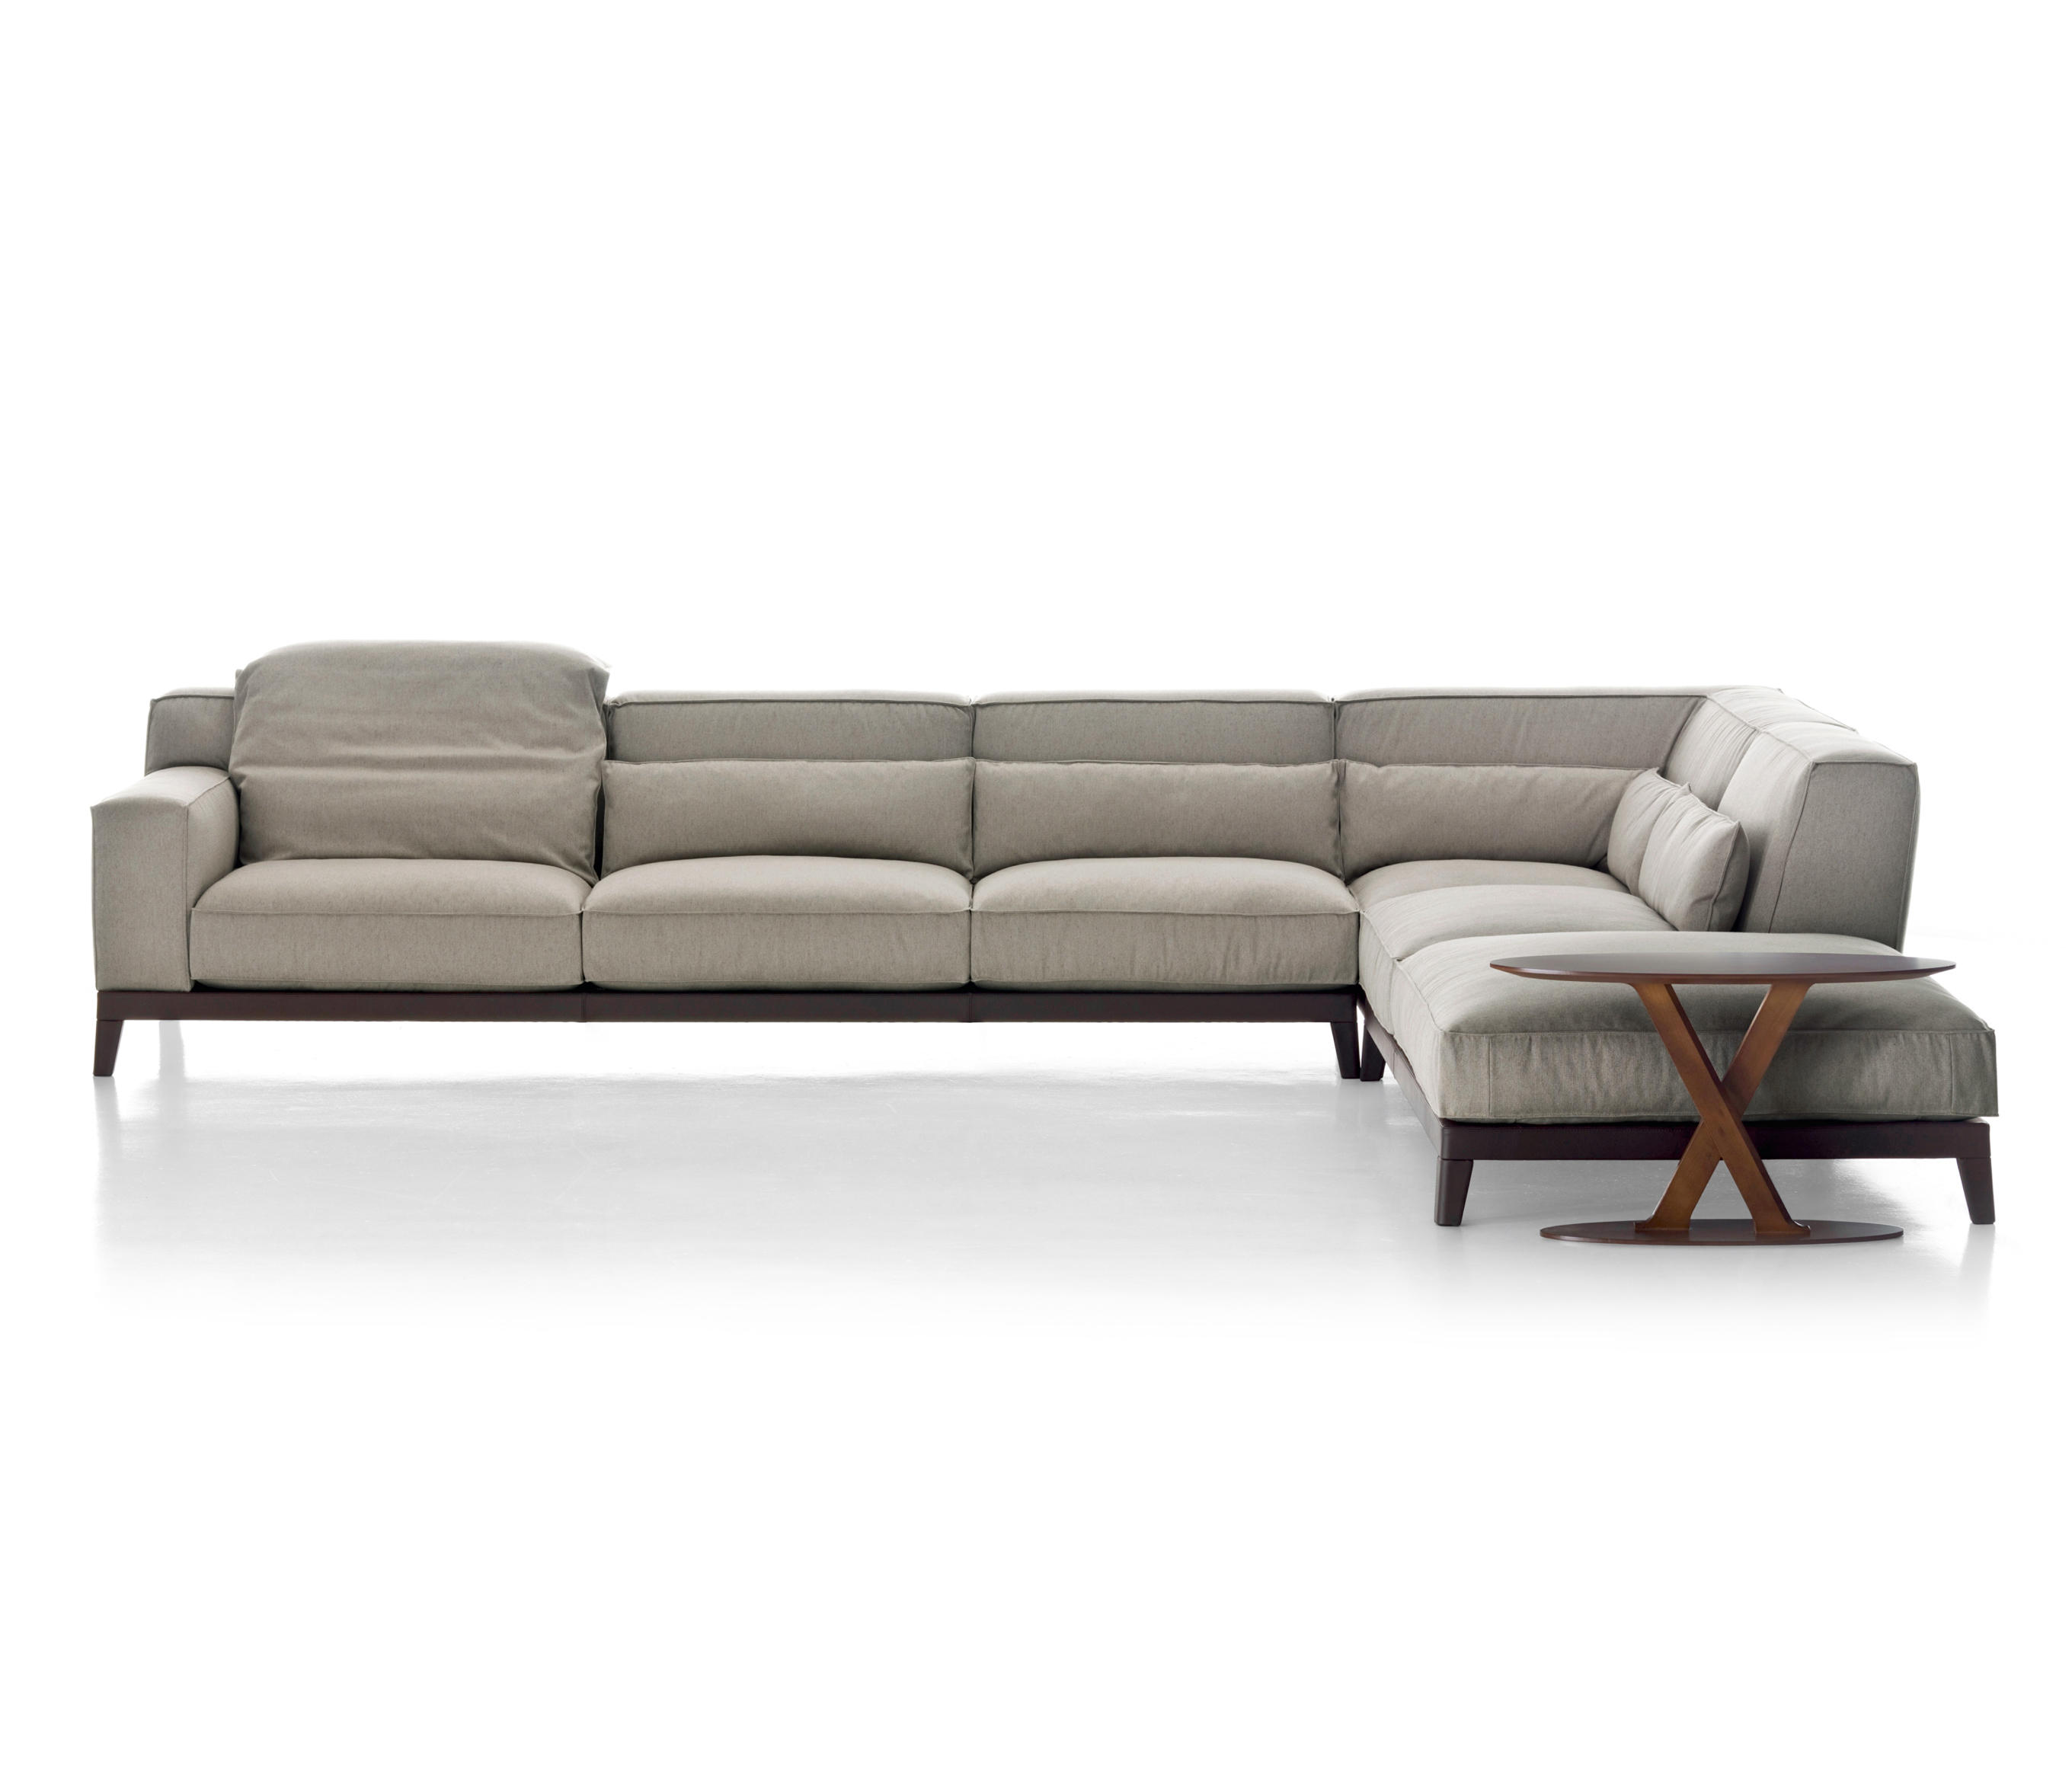 sofas couches taupe leather sofa decor swing from busnelli architonic